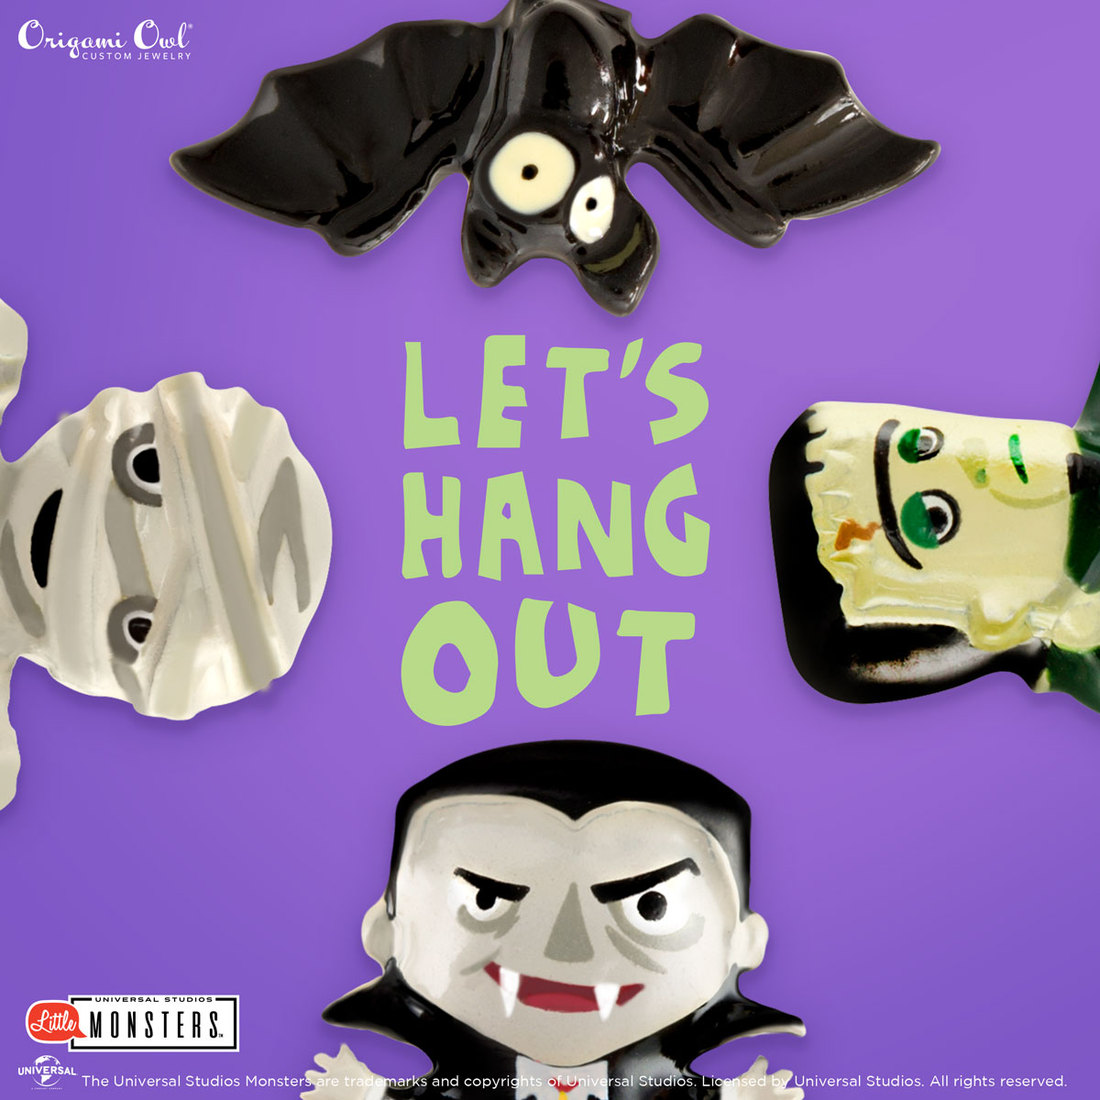 Origami Owl Halloween 2018 collection